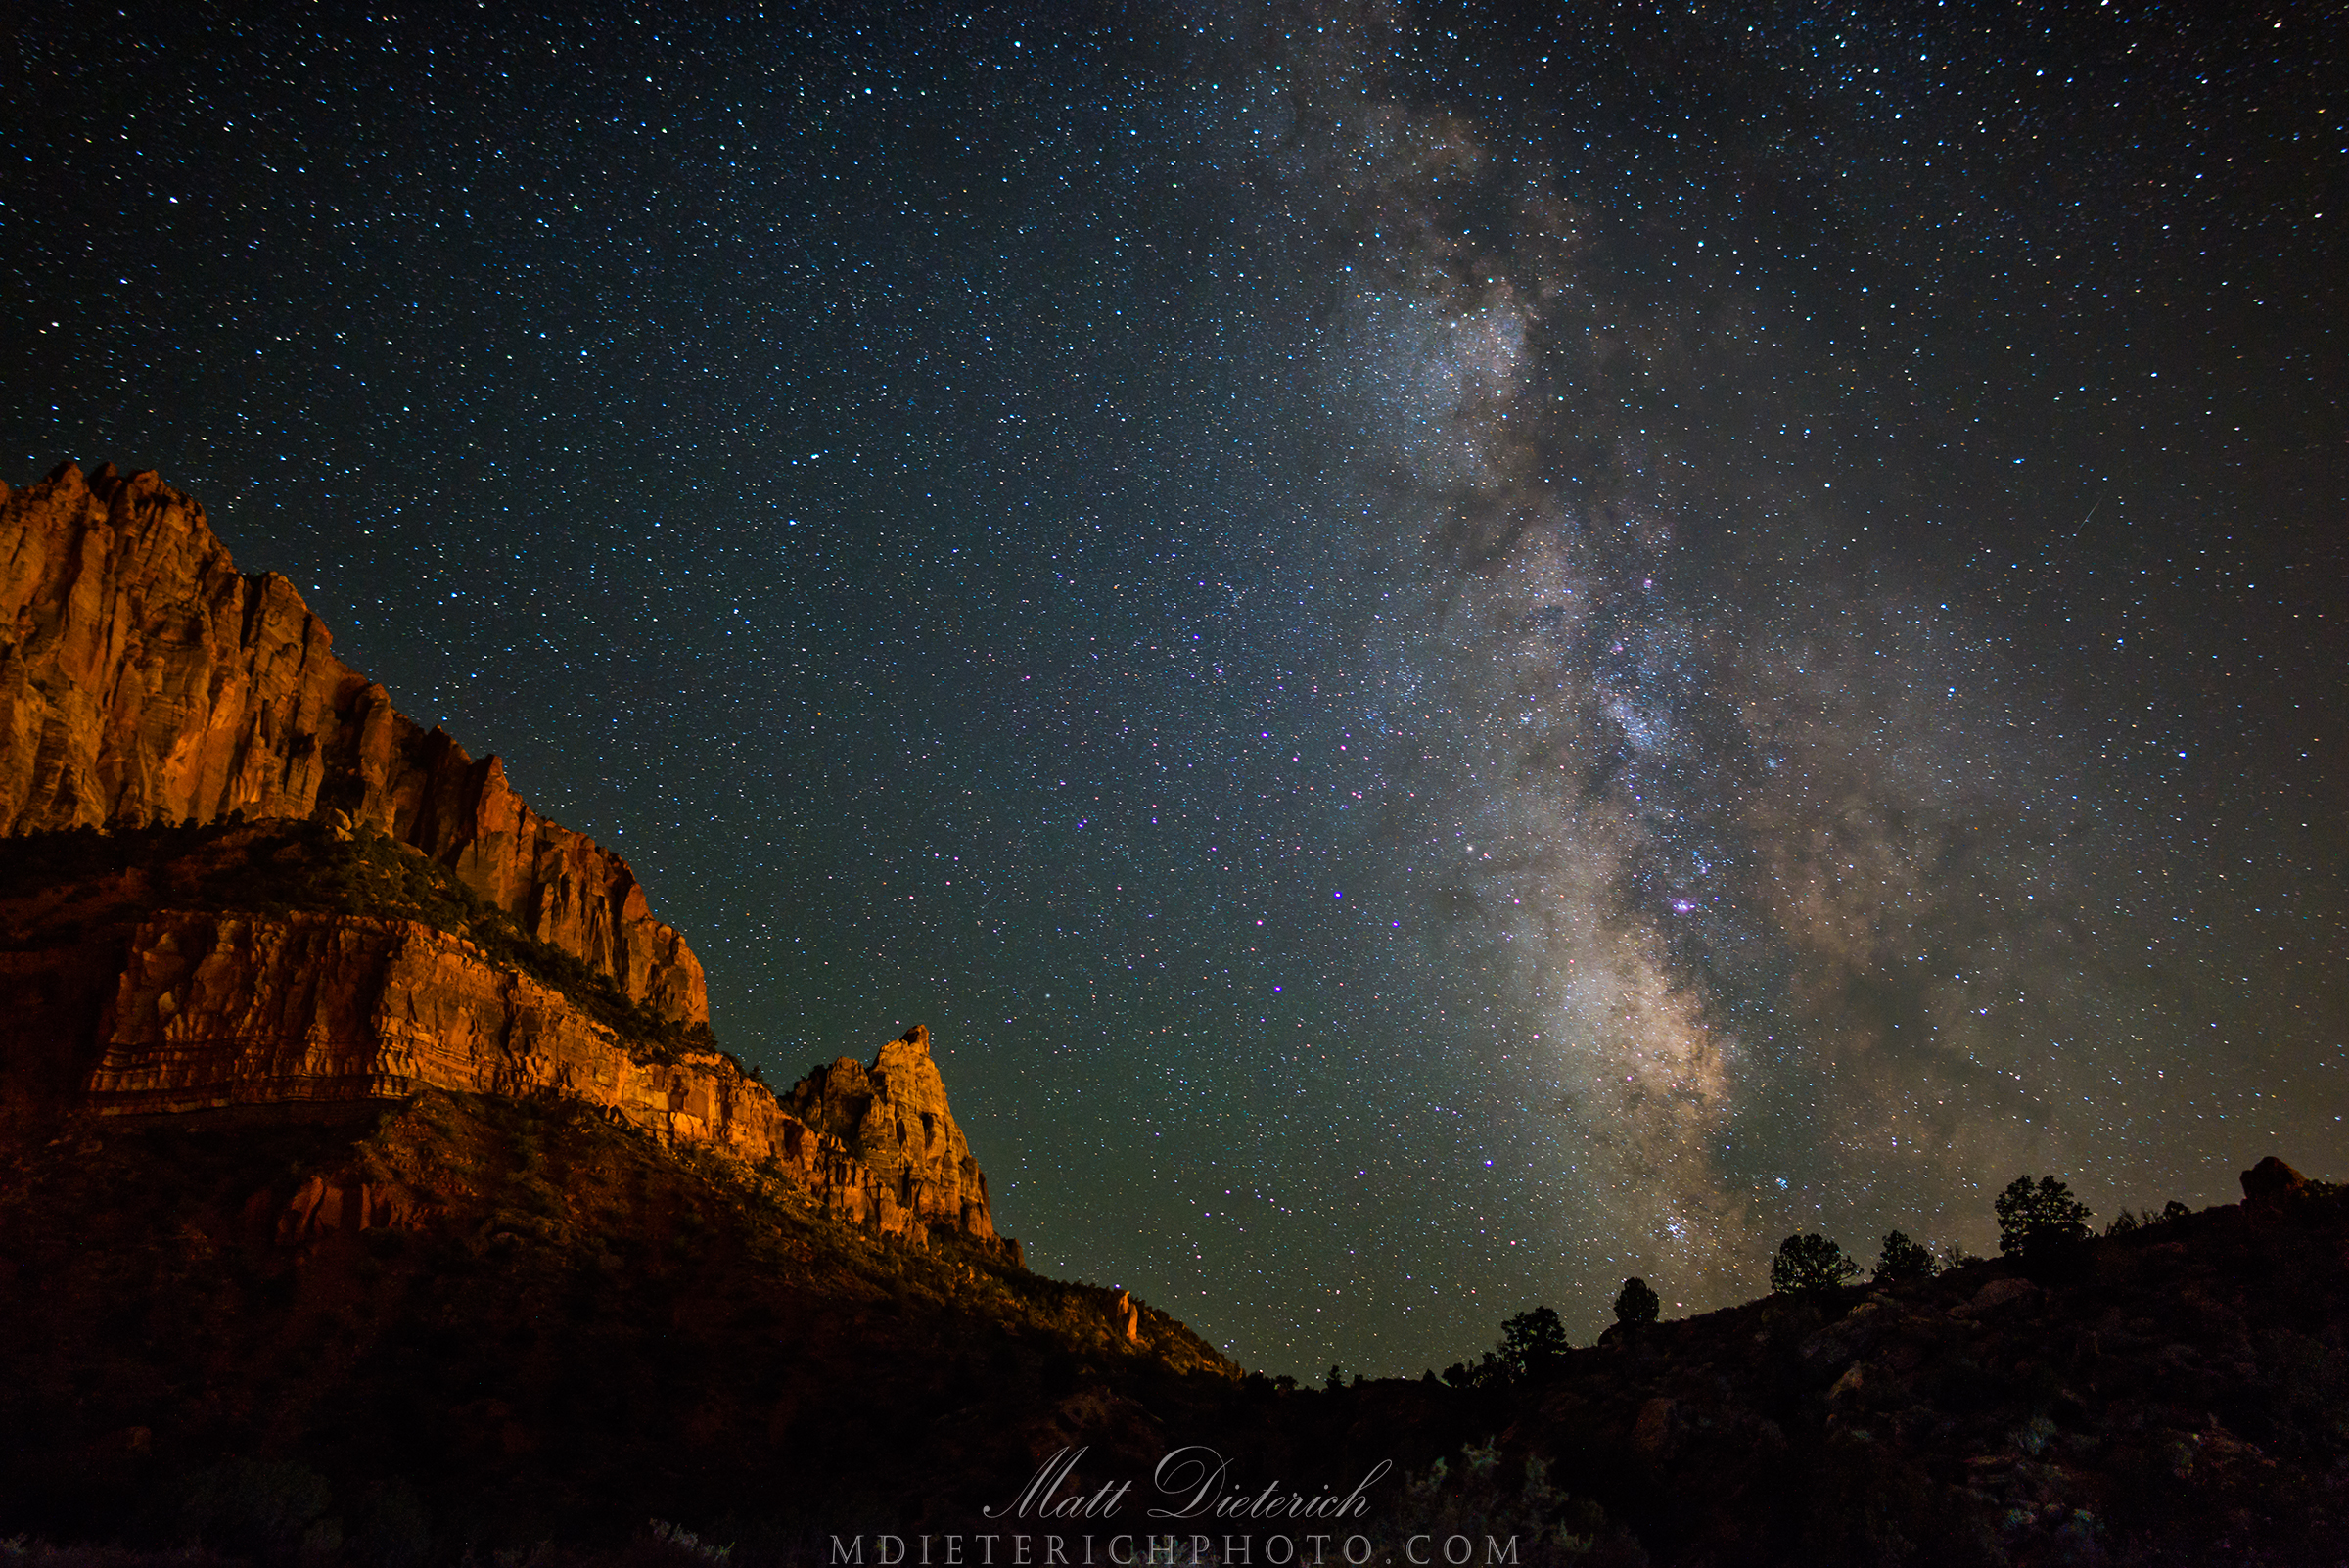 Put A Stamp On It The Astrophotography Of Matt Dieterich